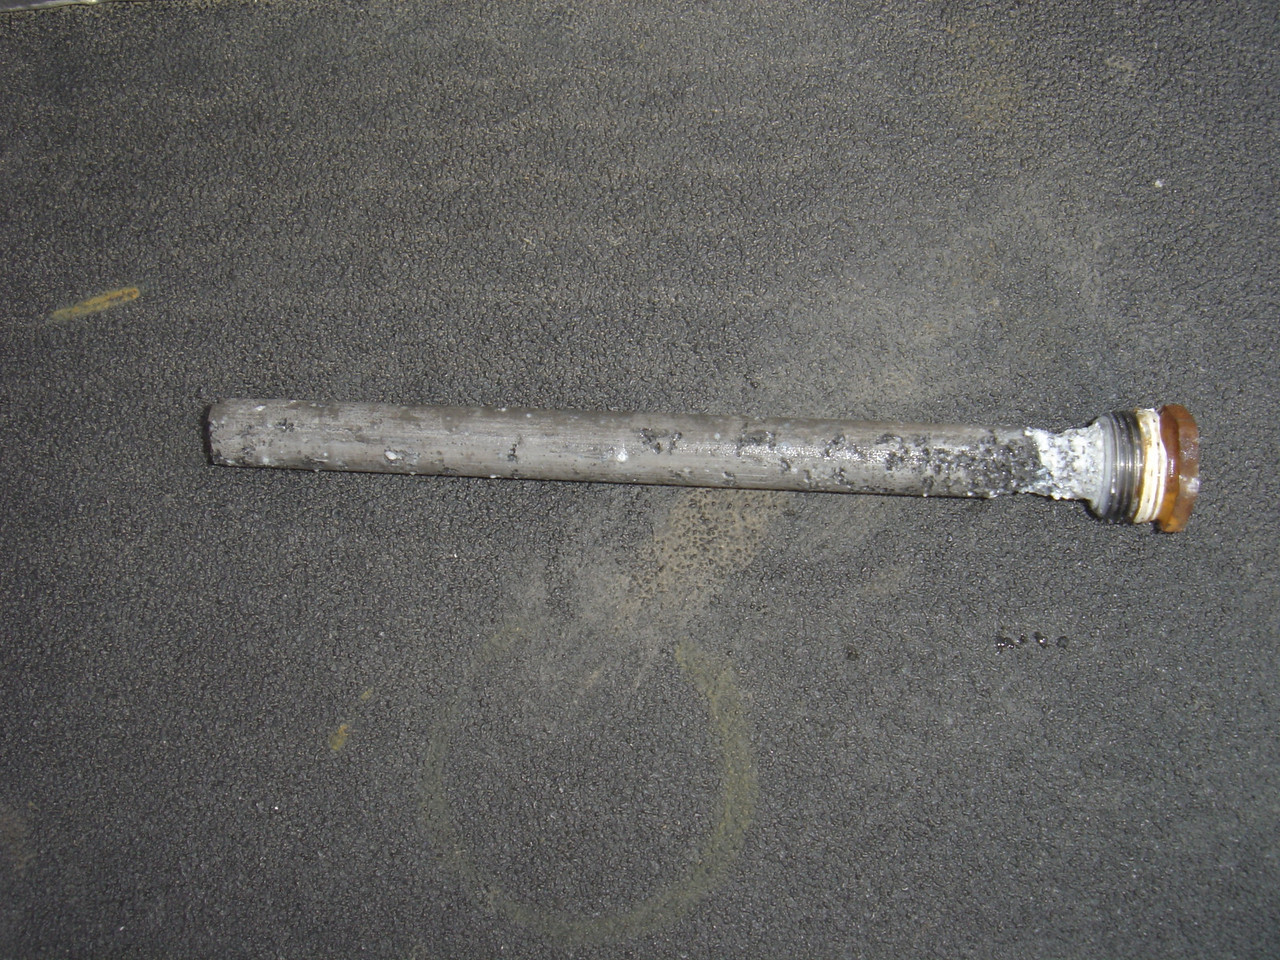 While not part of winterizing it is a good time to inspect the sacrificial anode and order a replacement if needed.